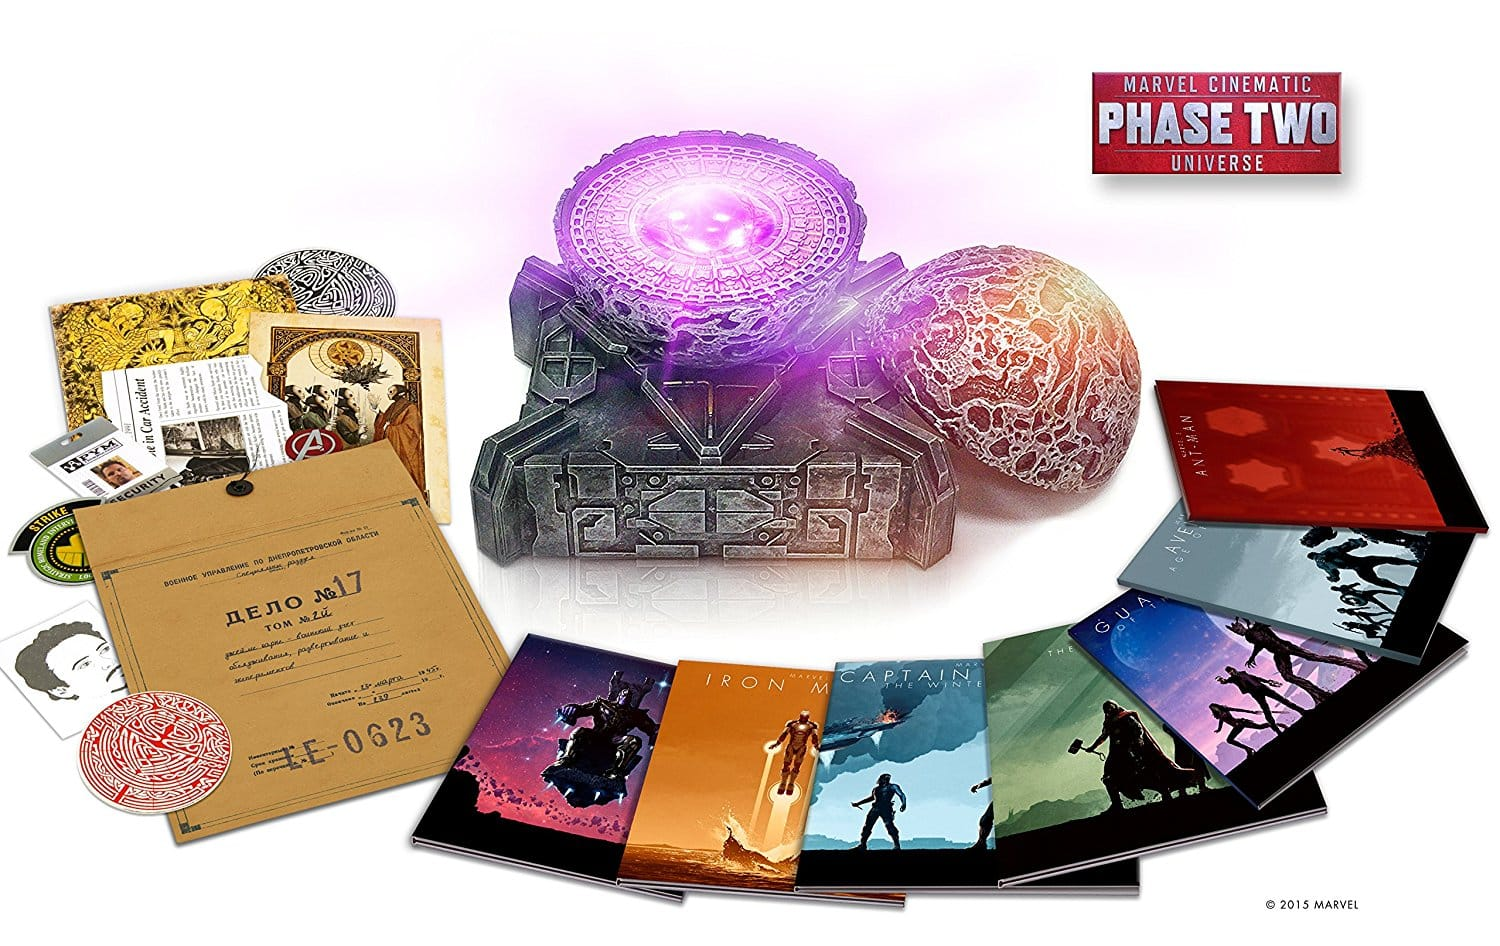 Marvel Cinematic Universe: Phase Two Collection [Blu-ray + 3D + Digital] $165